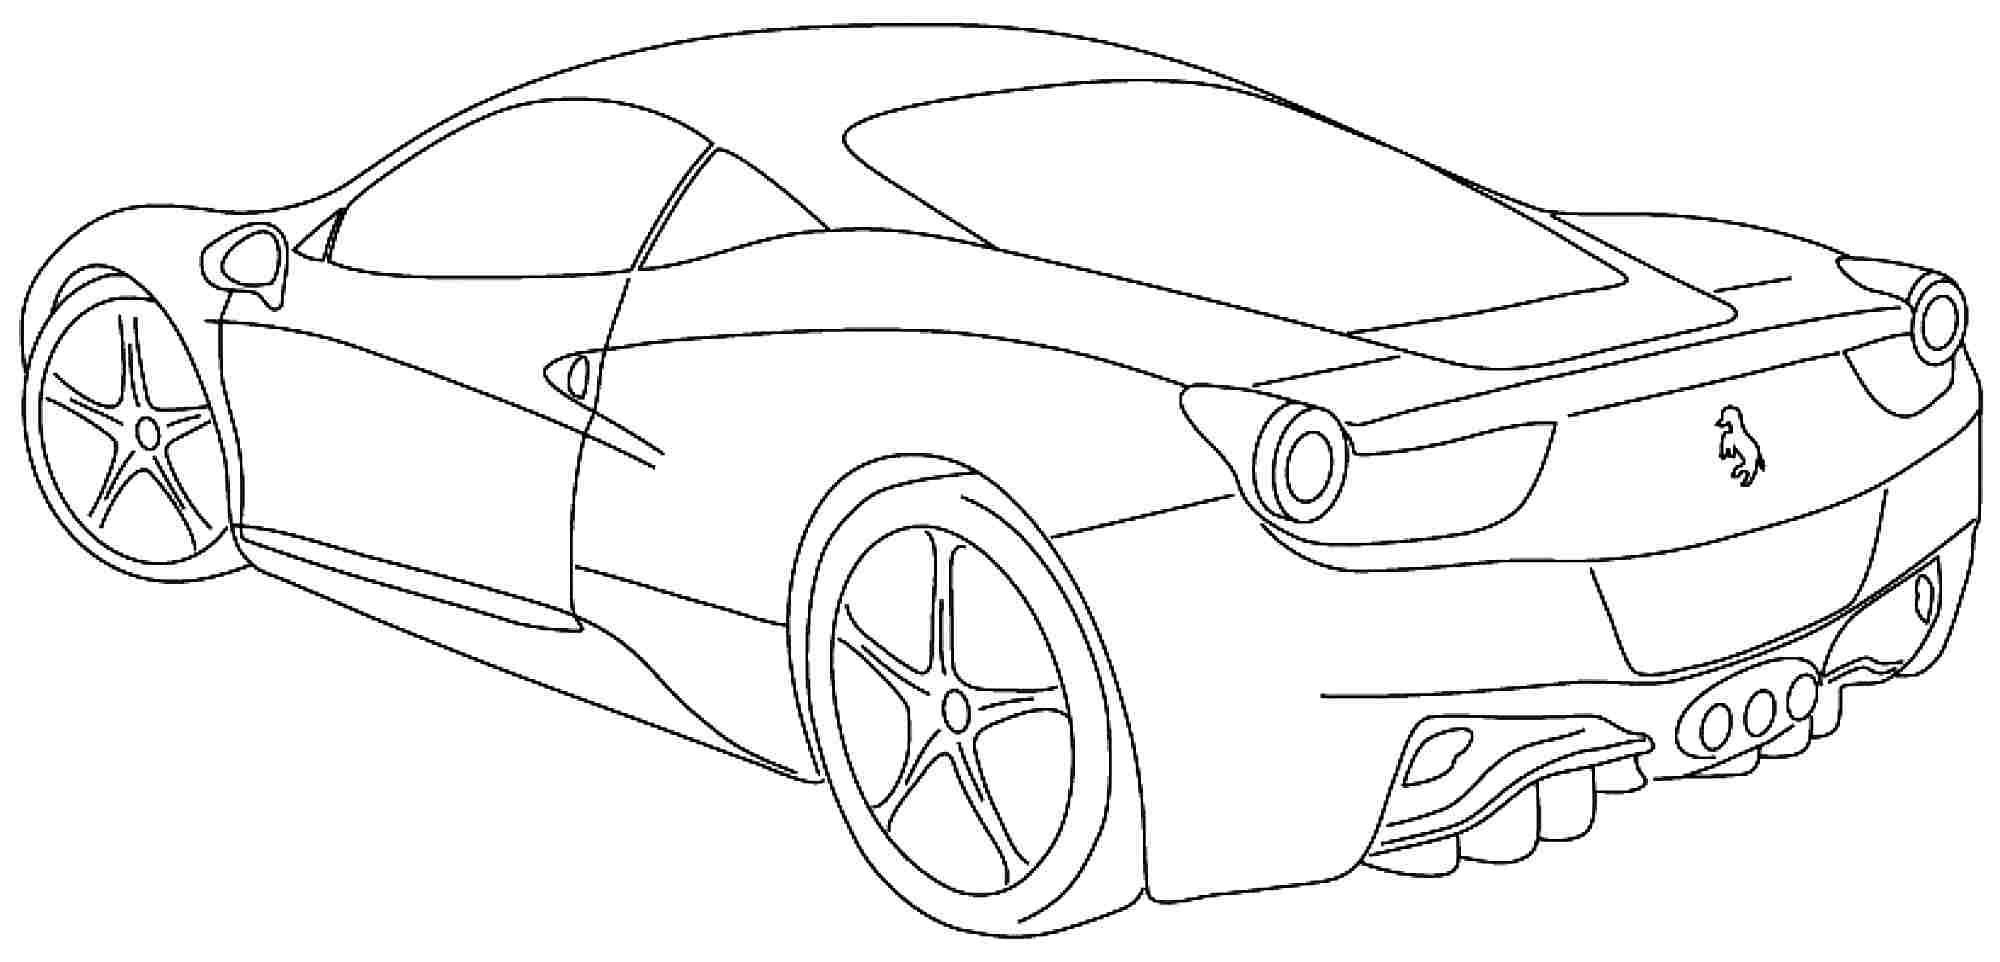 Sports Coloring Pages - Free Sports Car Coloring Pages Coloringsuite